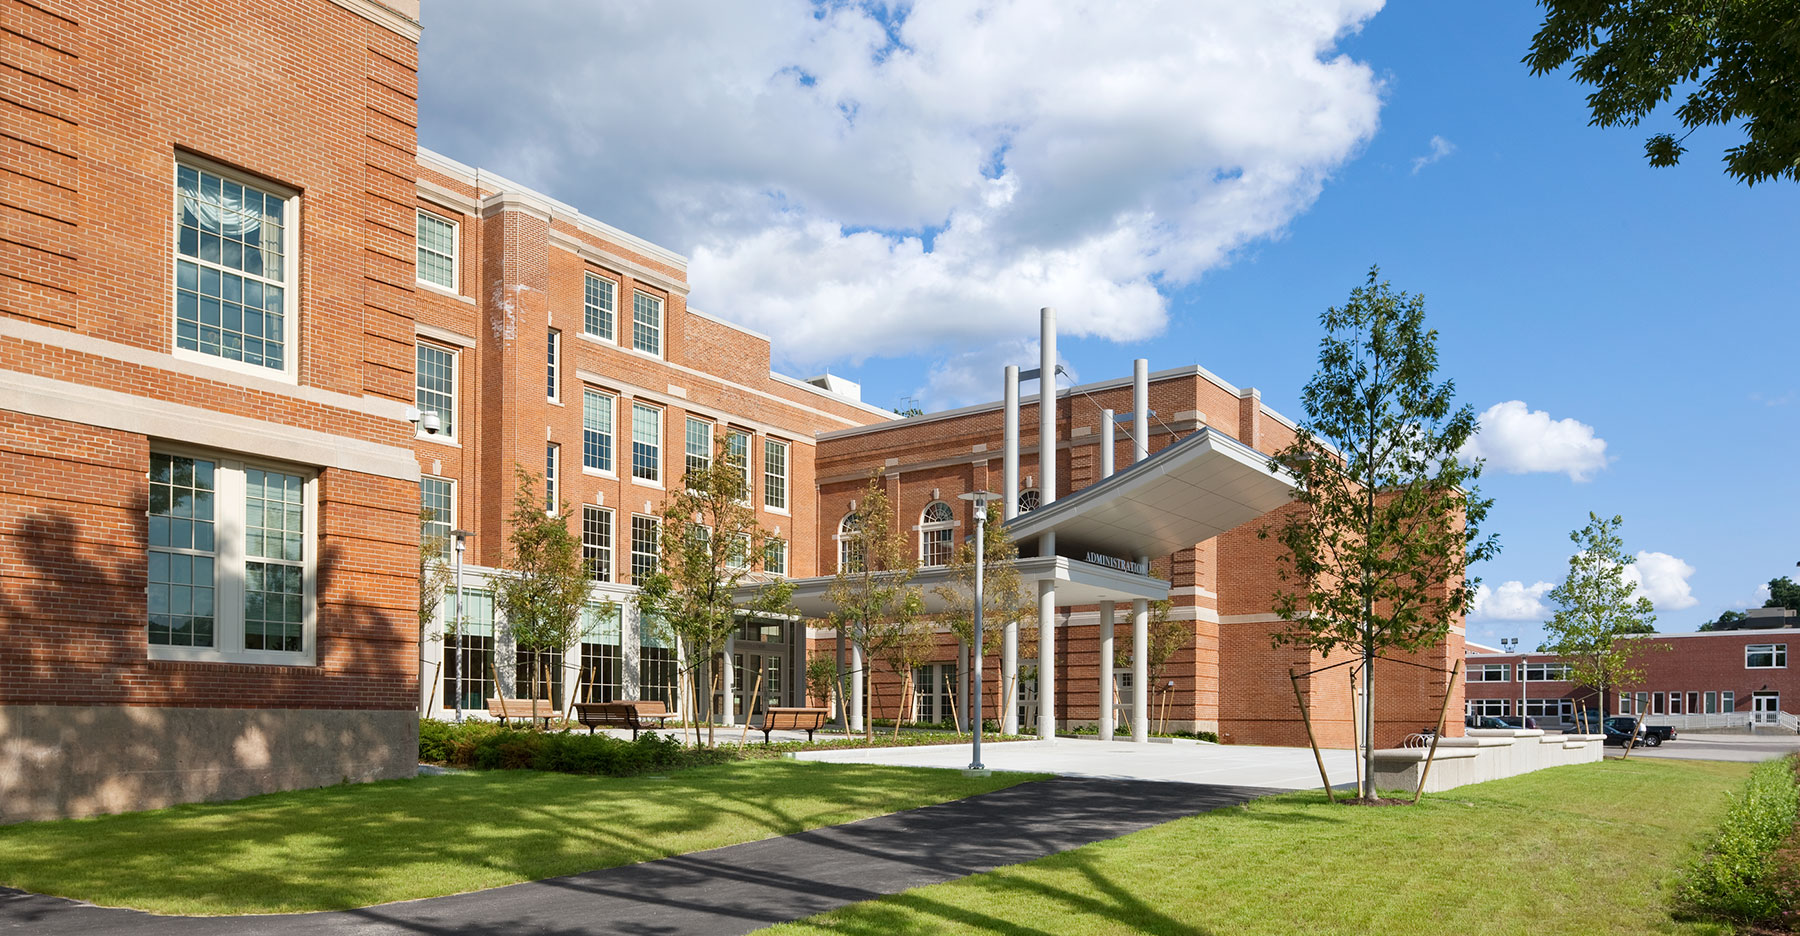 Worcester State University, Shaughessy Administration Building